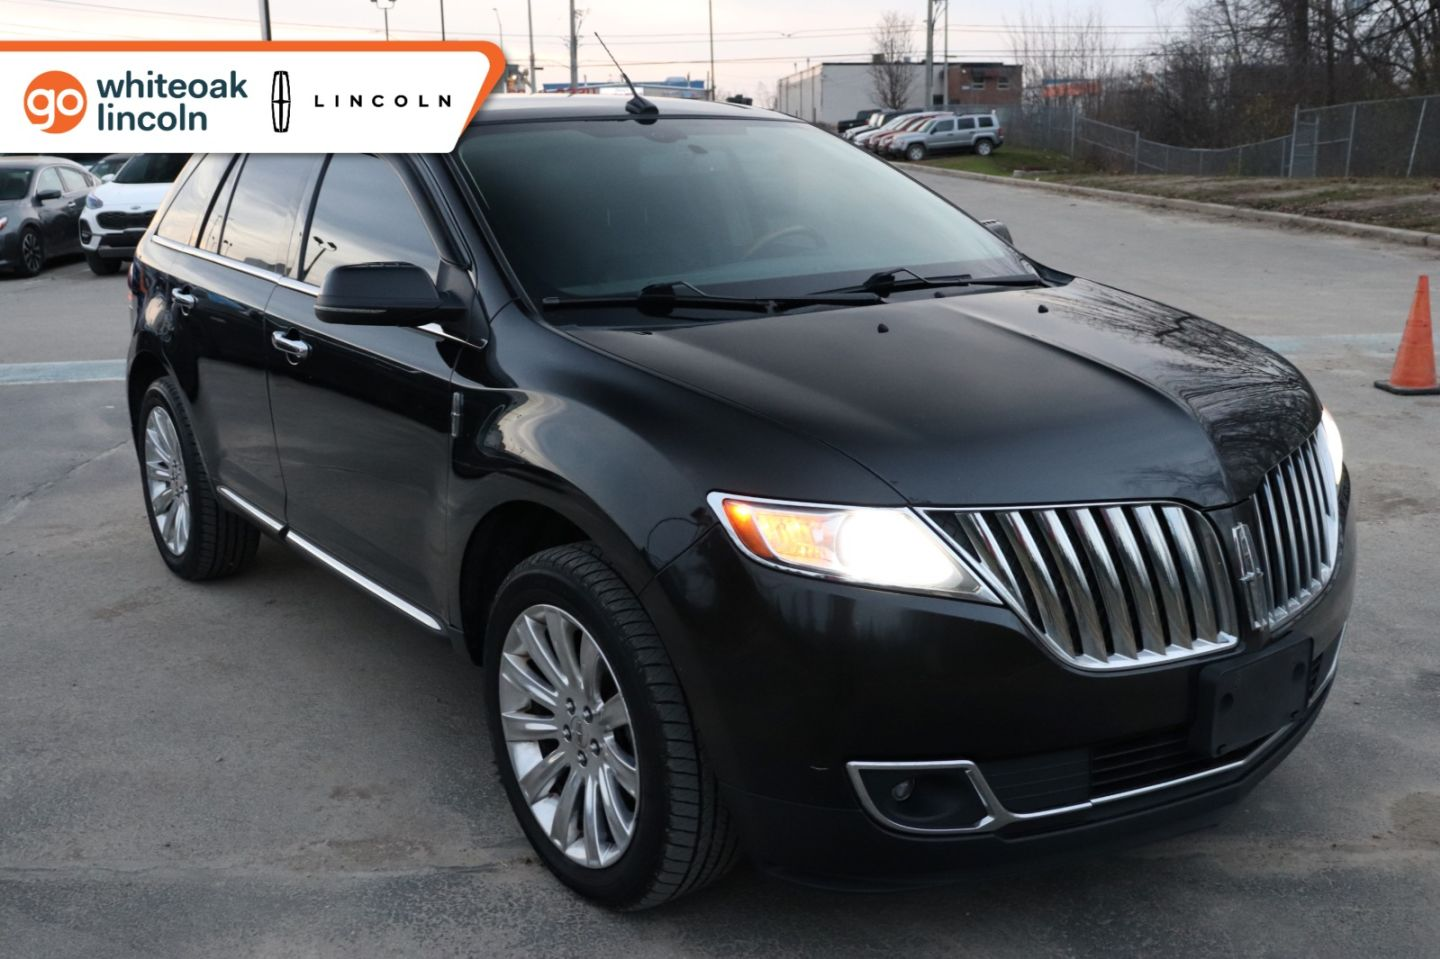 2013 Lincoln MKX  for sale in Mississauga, Ontario